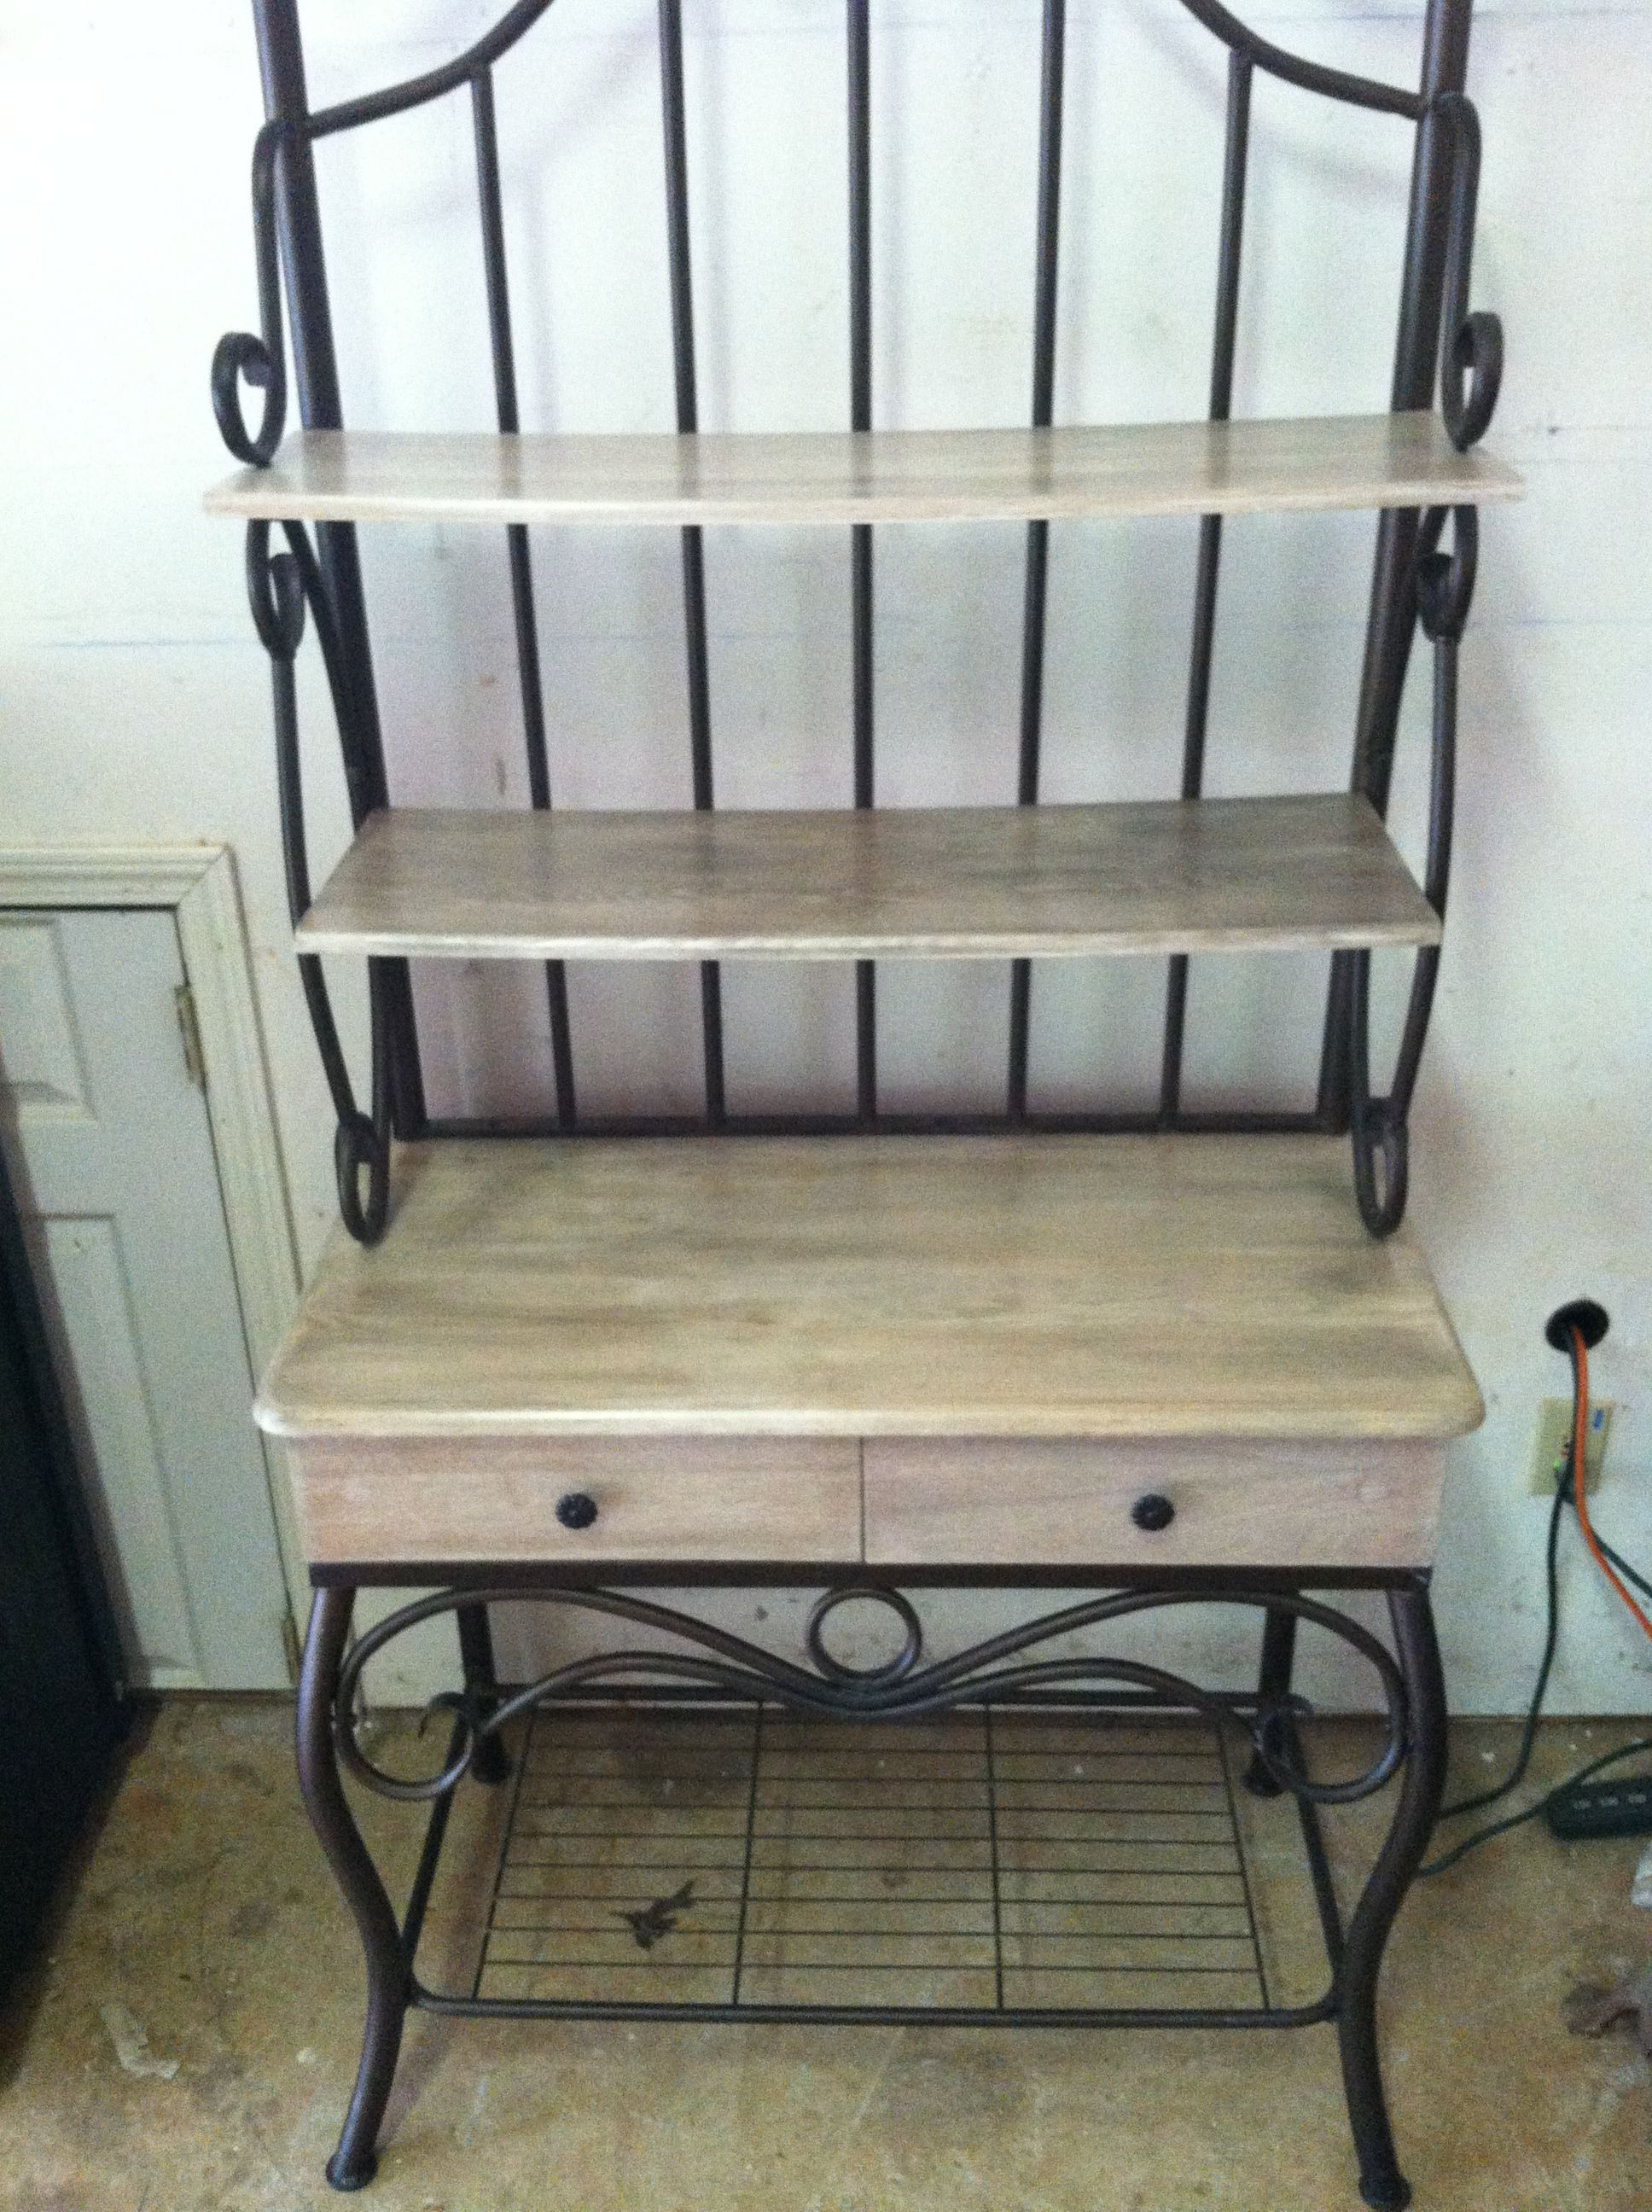 Modern Day Bakers Rack I Refinished With A Pickled Whitewash On